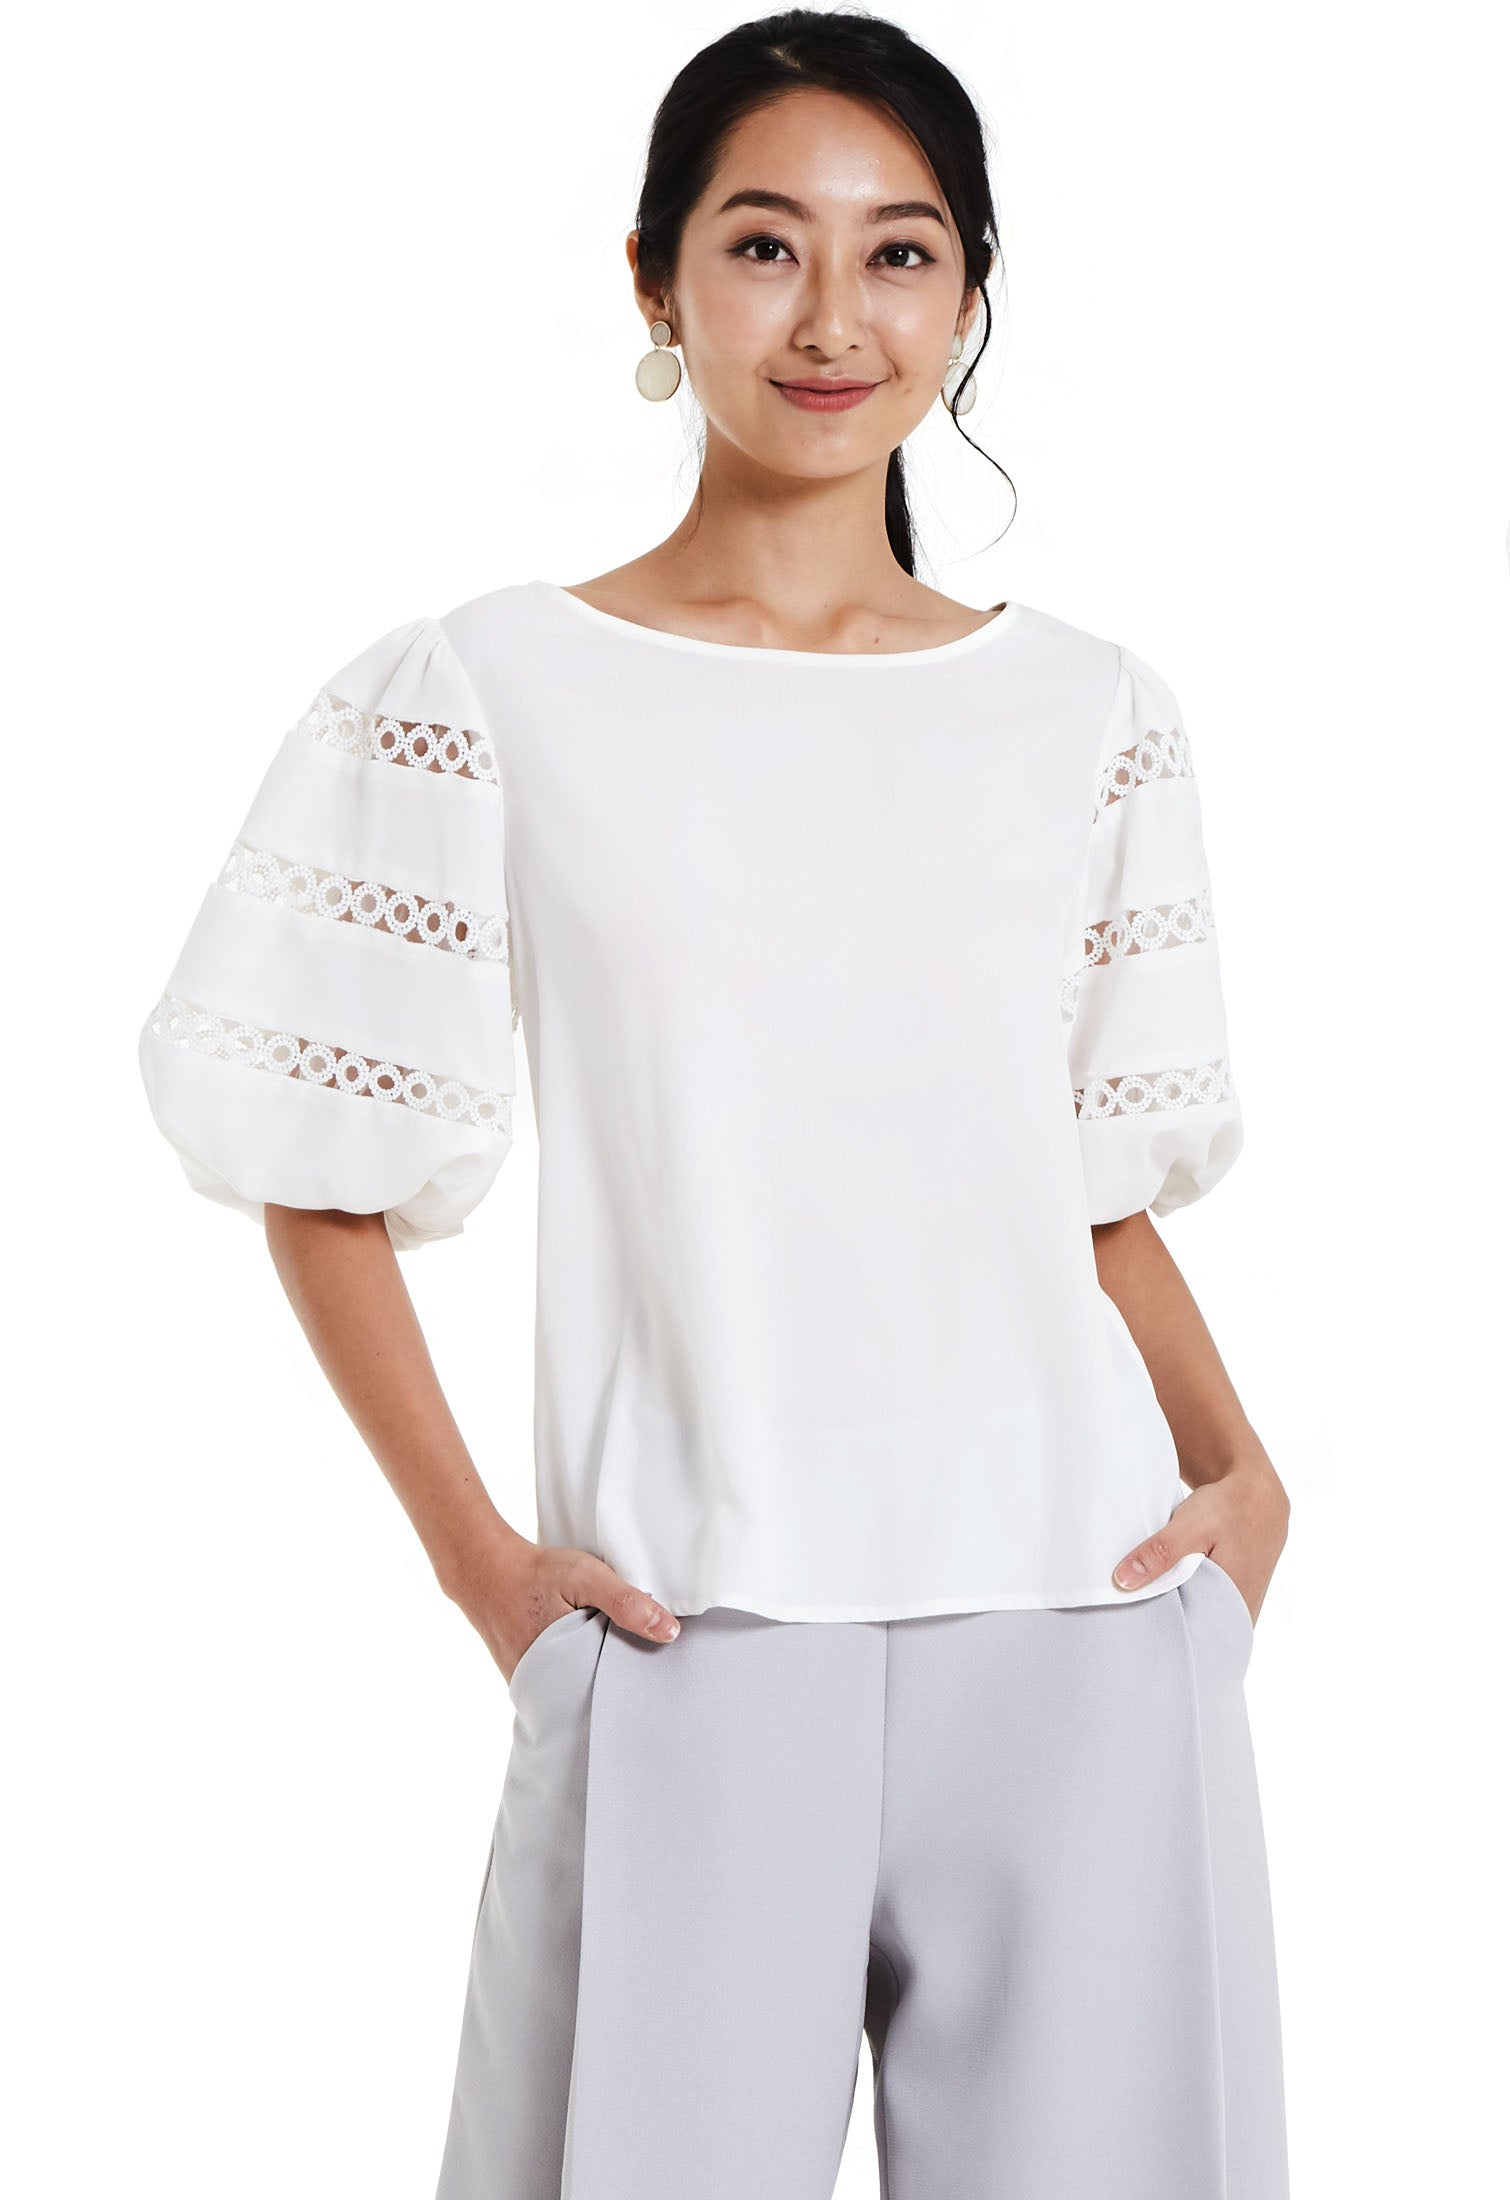 Chic Puff Sleeve Top